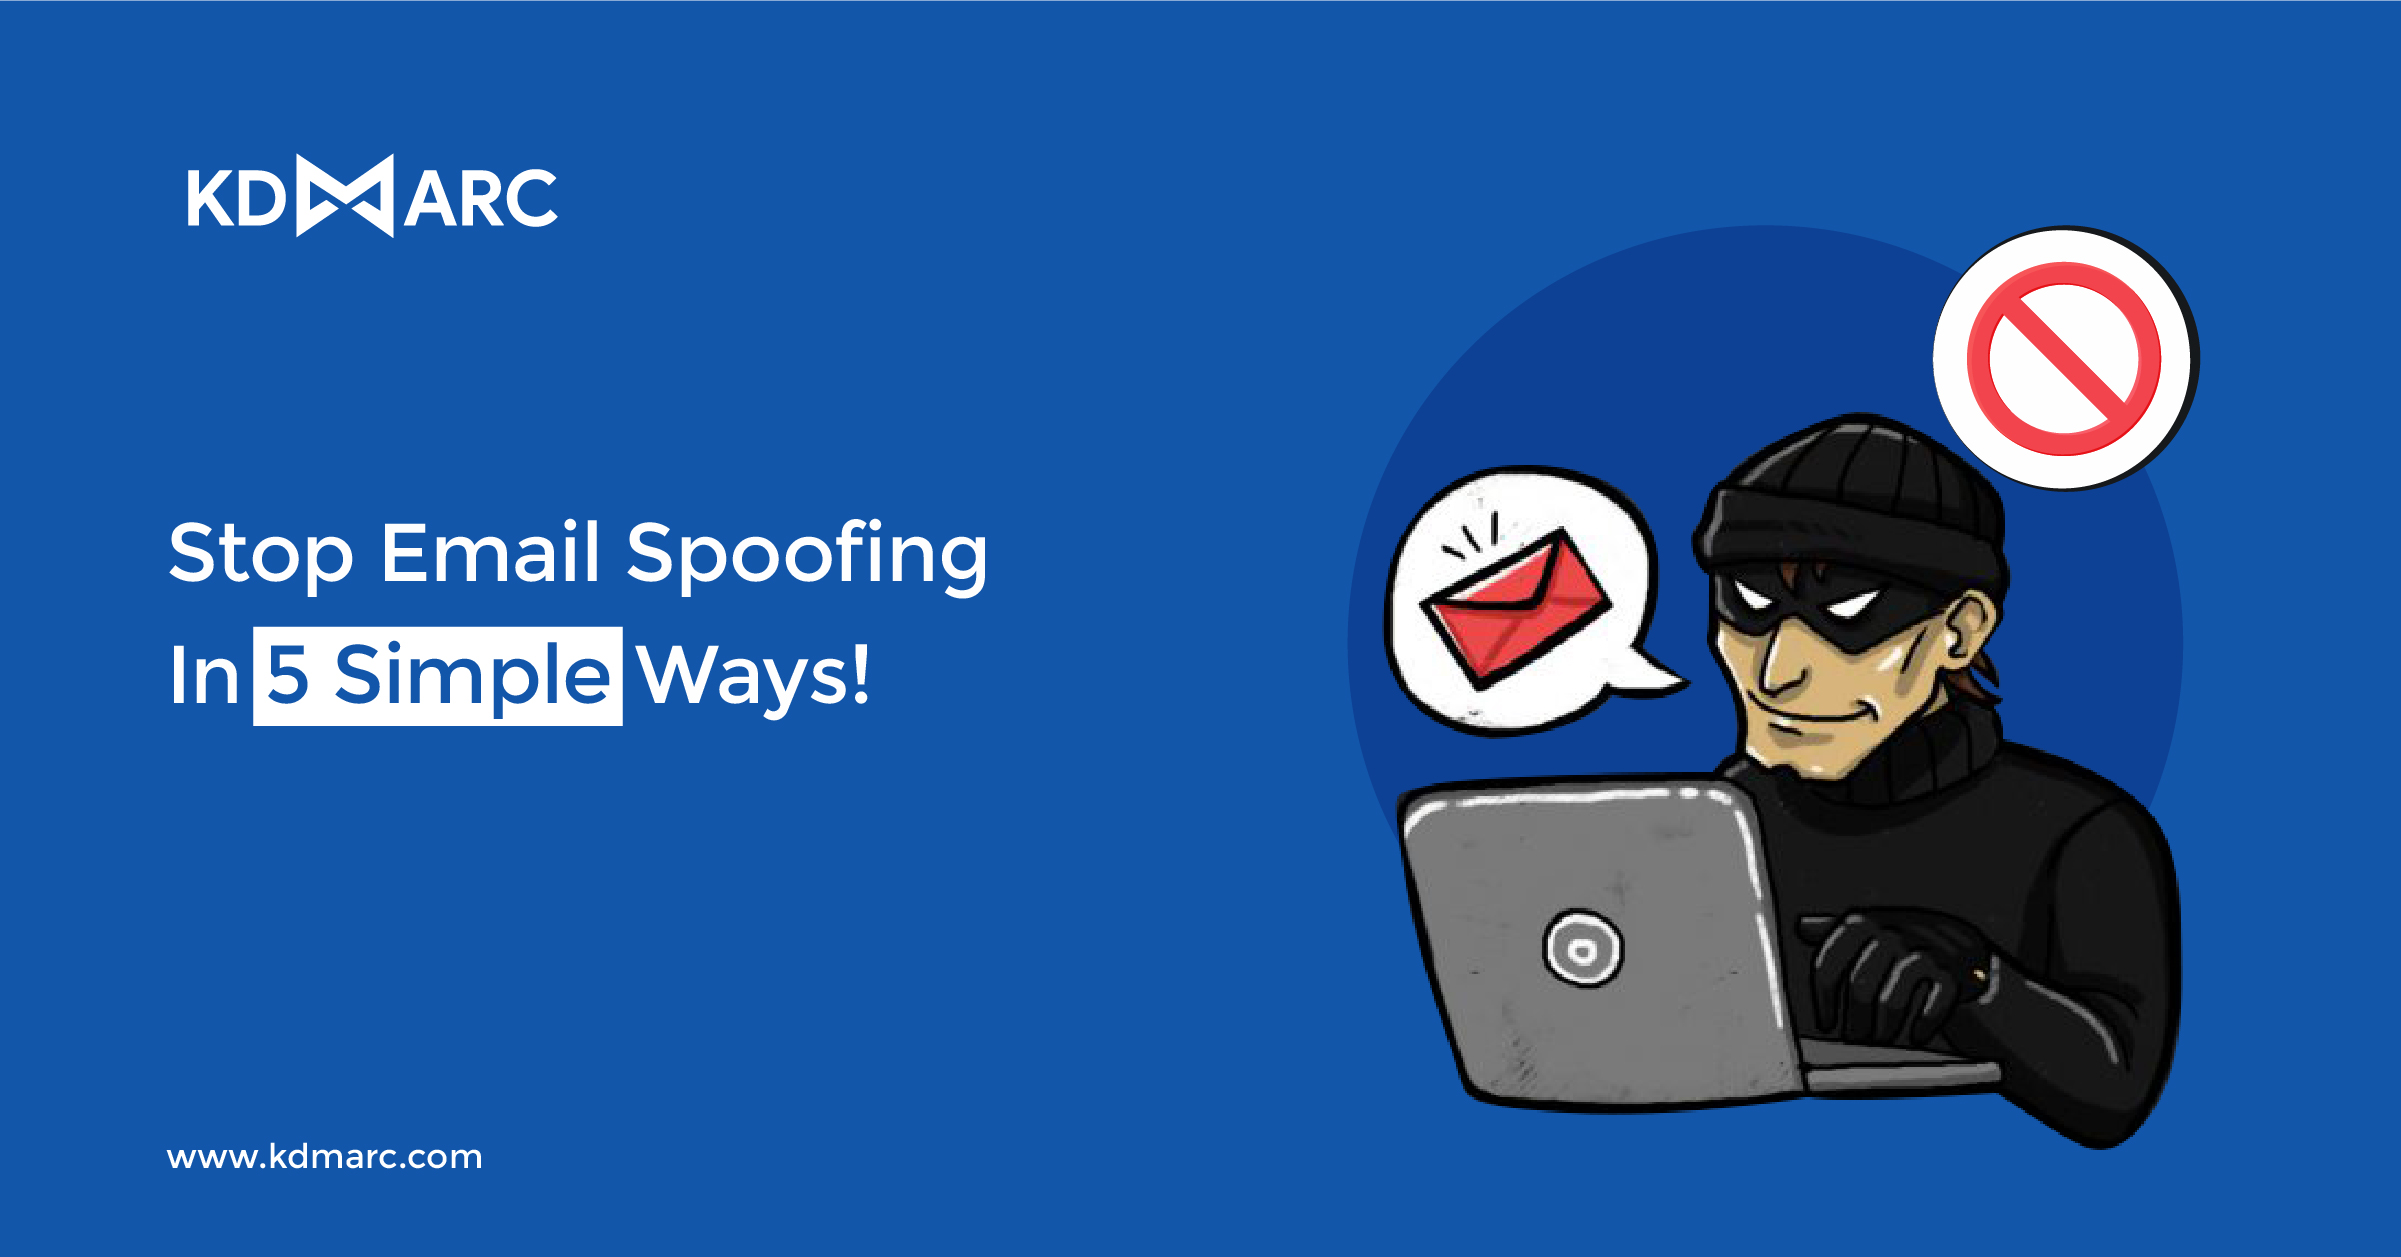 Stop Email Spoofing in 5 Simple ways!